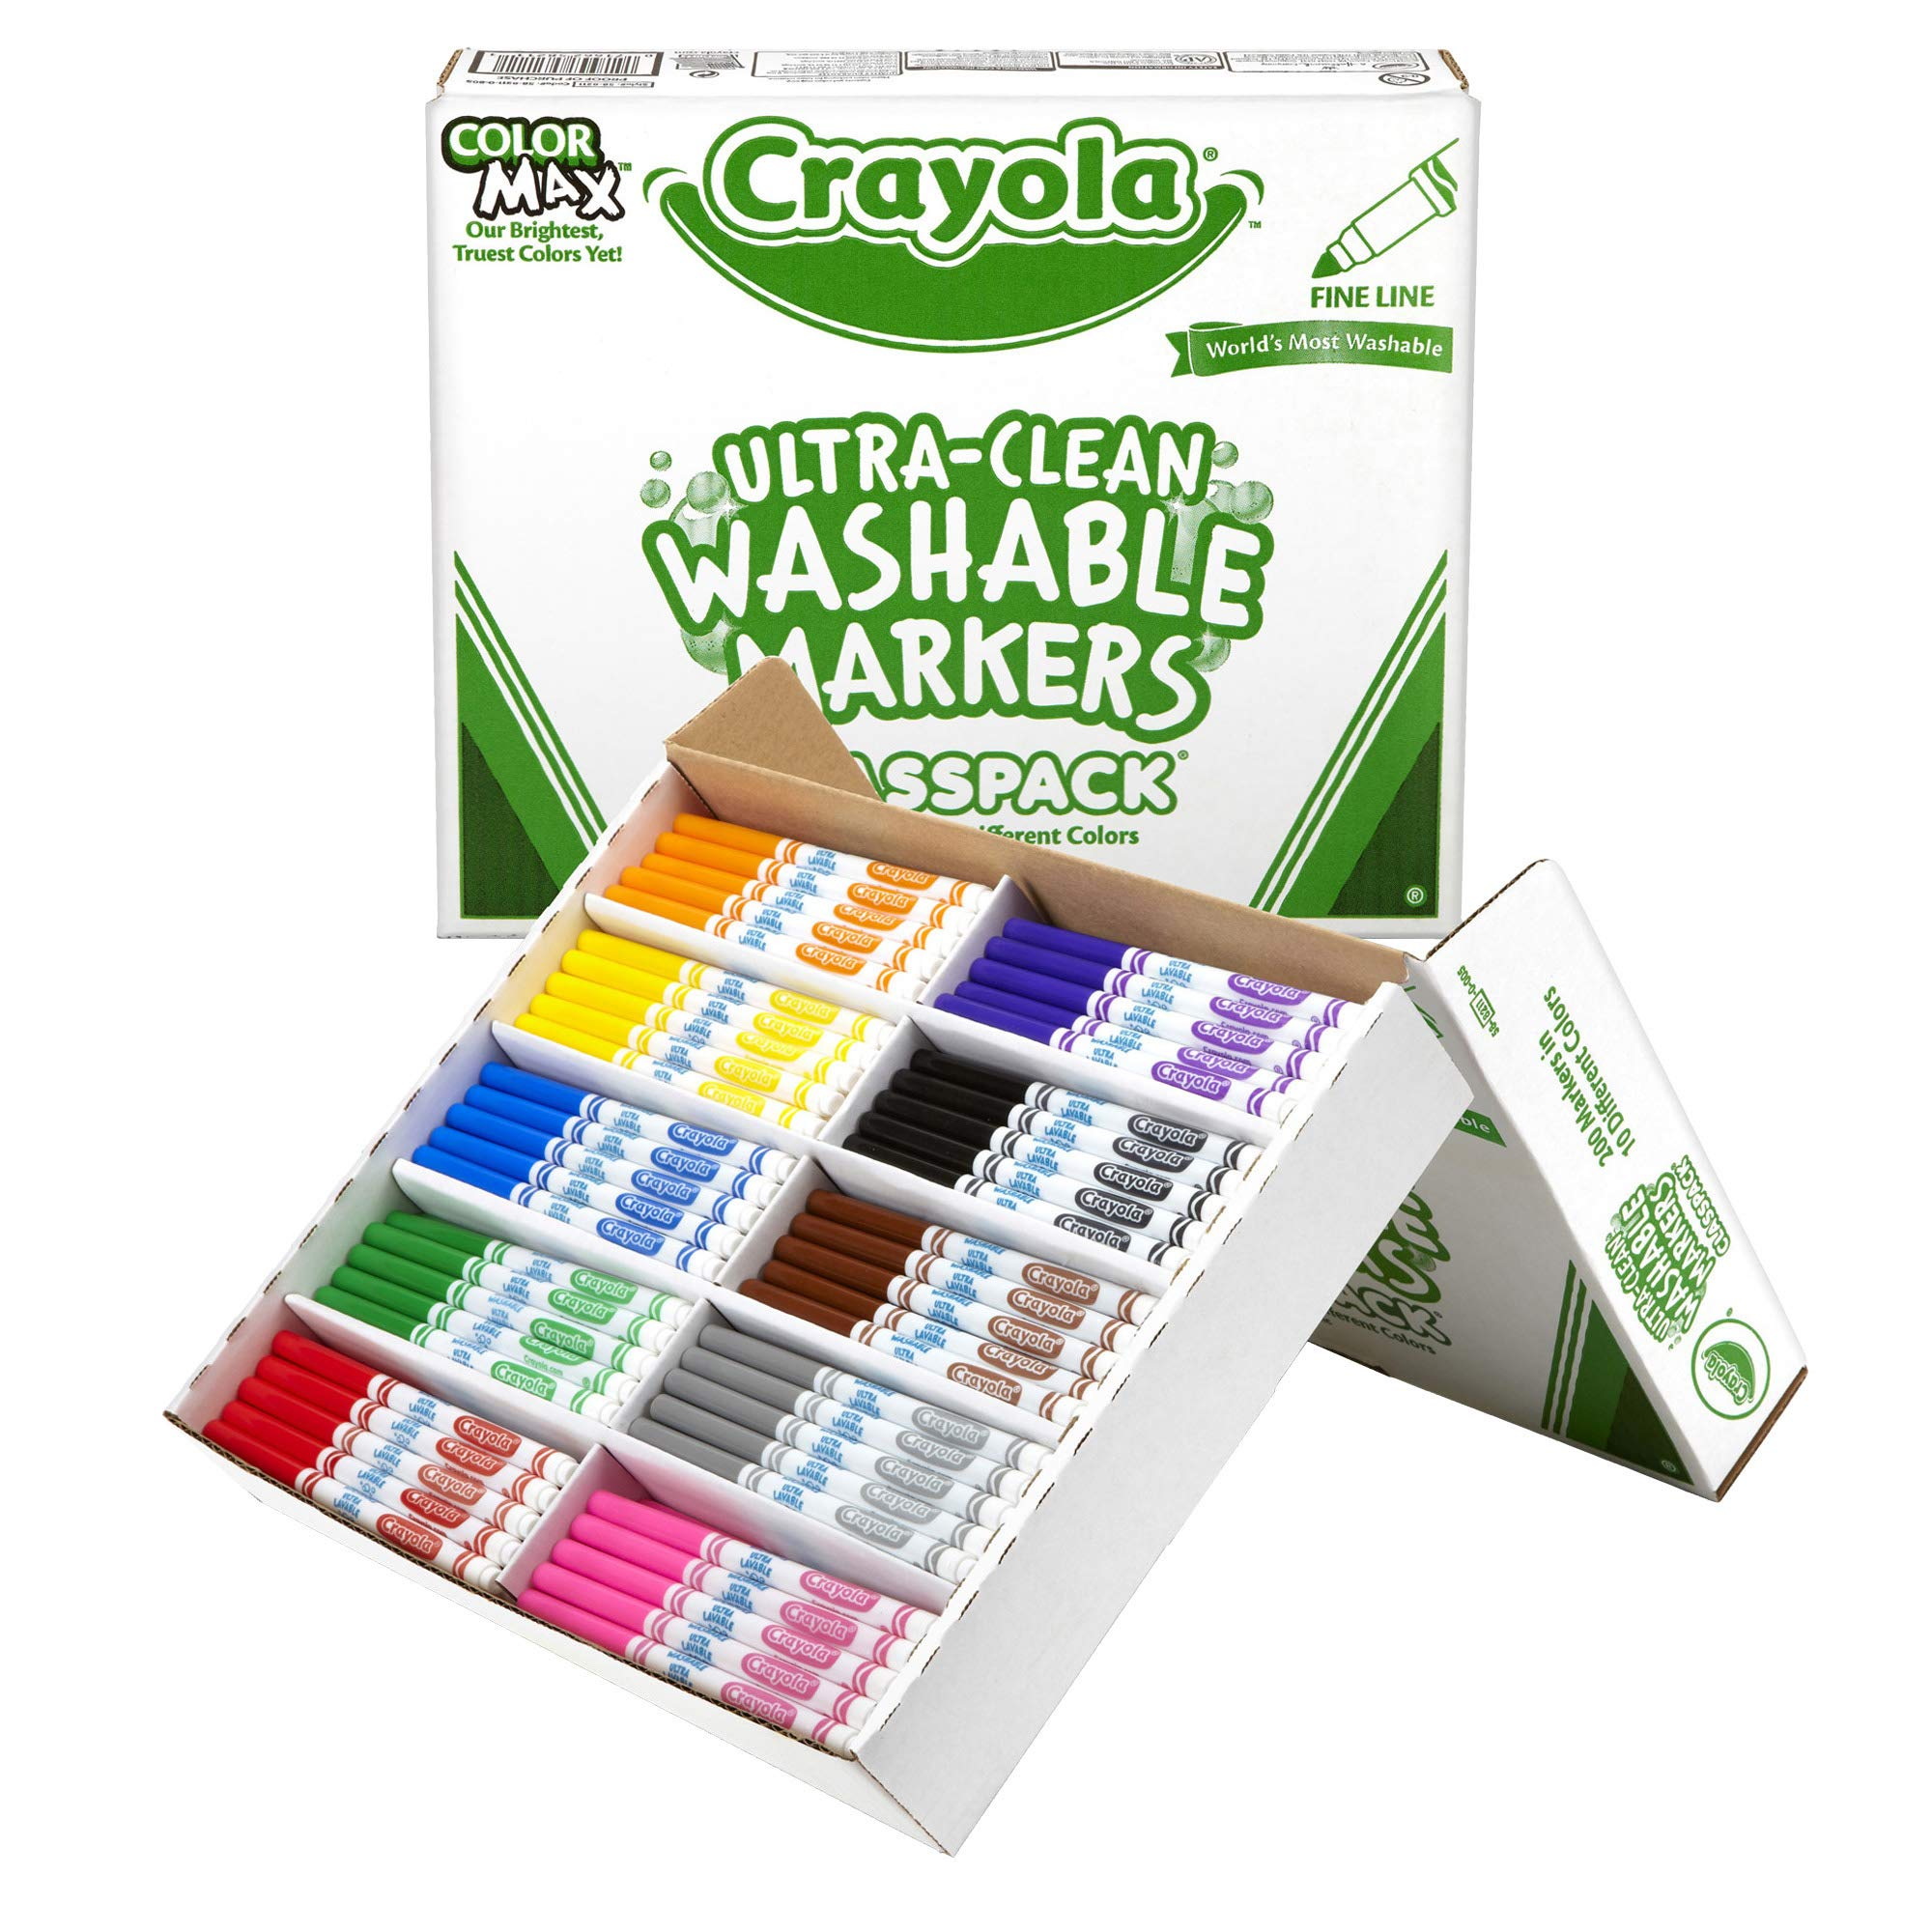 Crayola Ultra Clean Washable Markers, School Supplies Classpack, Fine Line, 10 Colors, Pack of 200 by Crayola